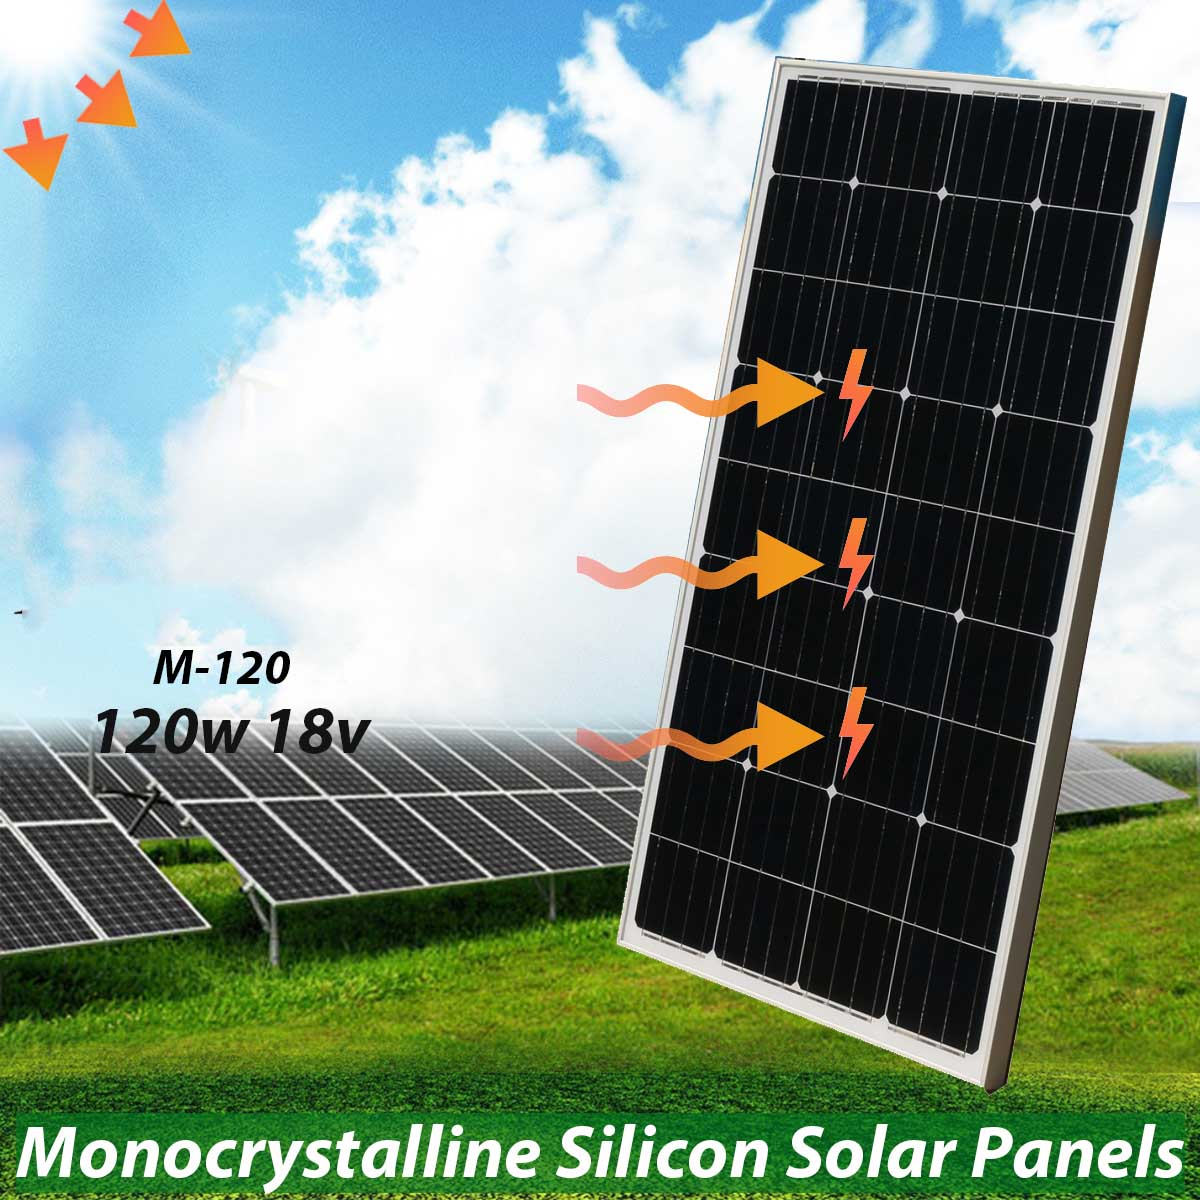 KINCO 120w 18v Monocrystalline Silicon Solar Panel With Glass Bearing Plate High Conversion Rate For Solar System Supply